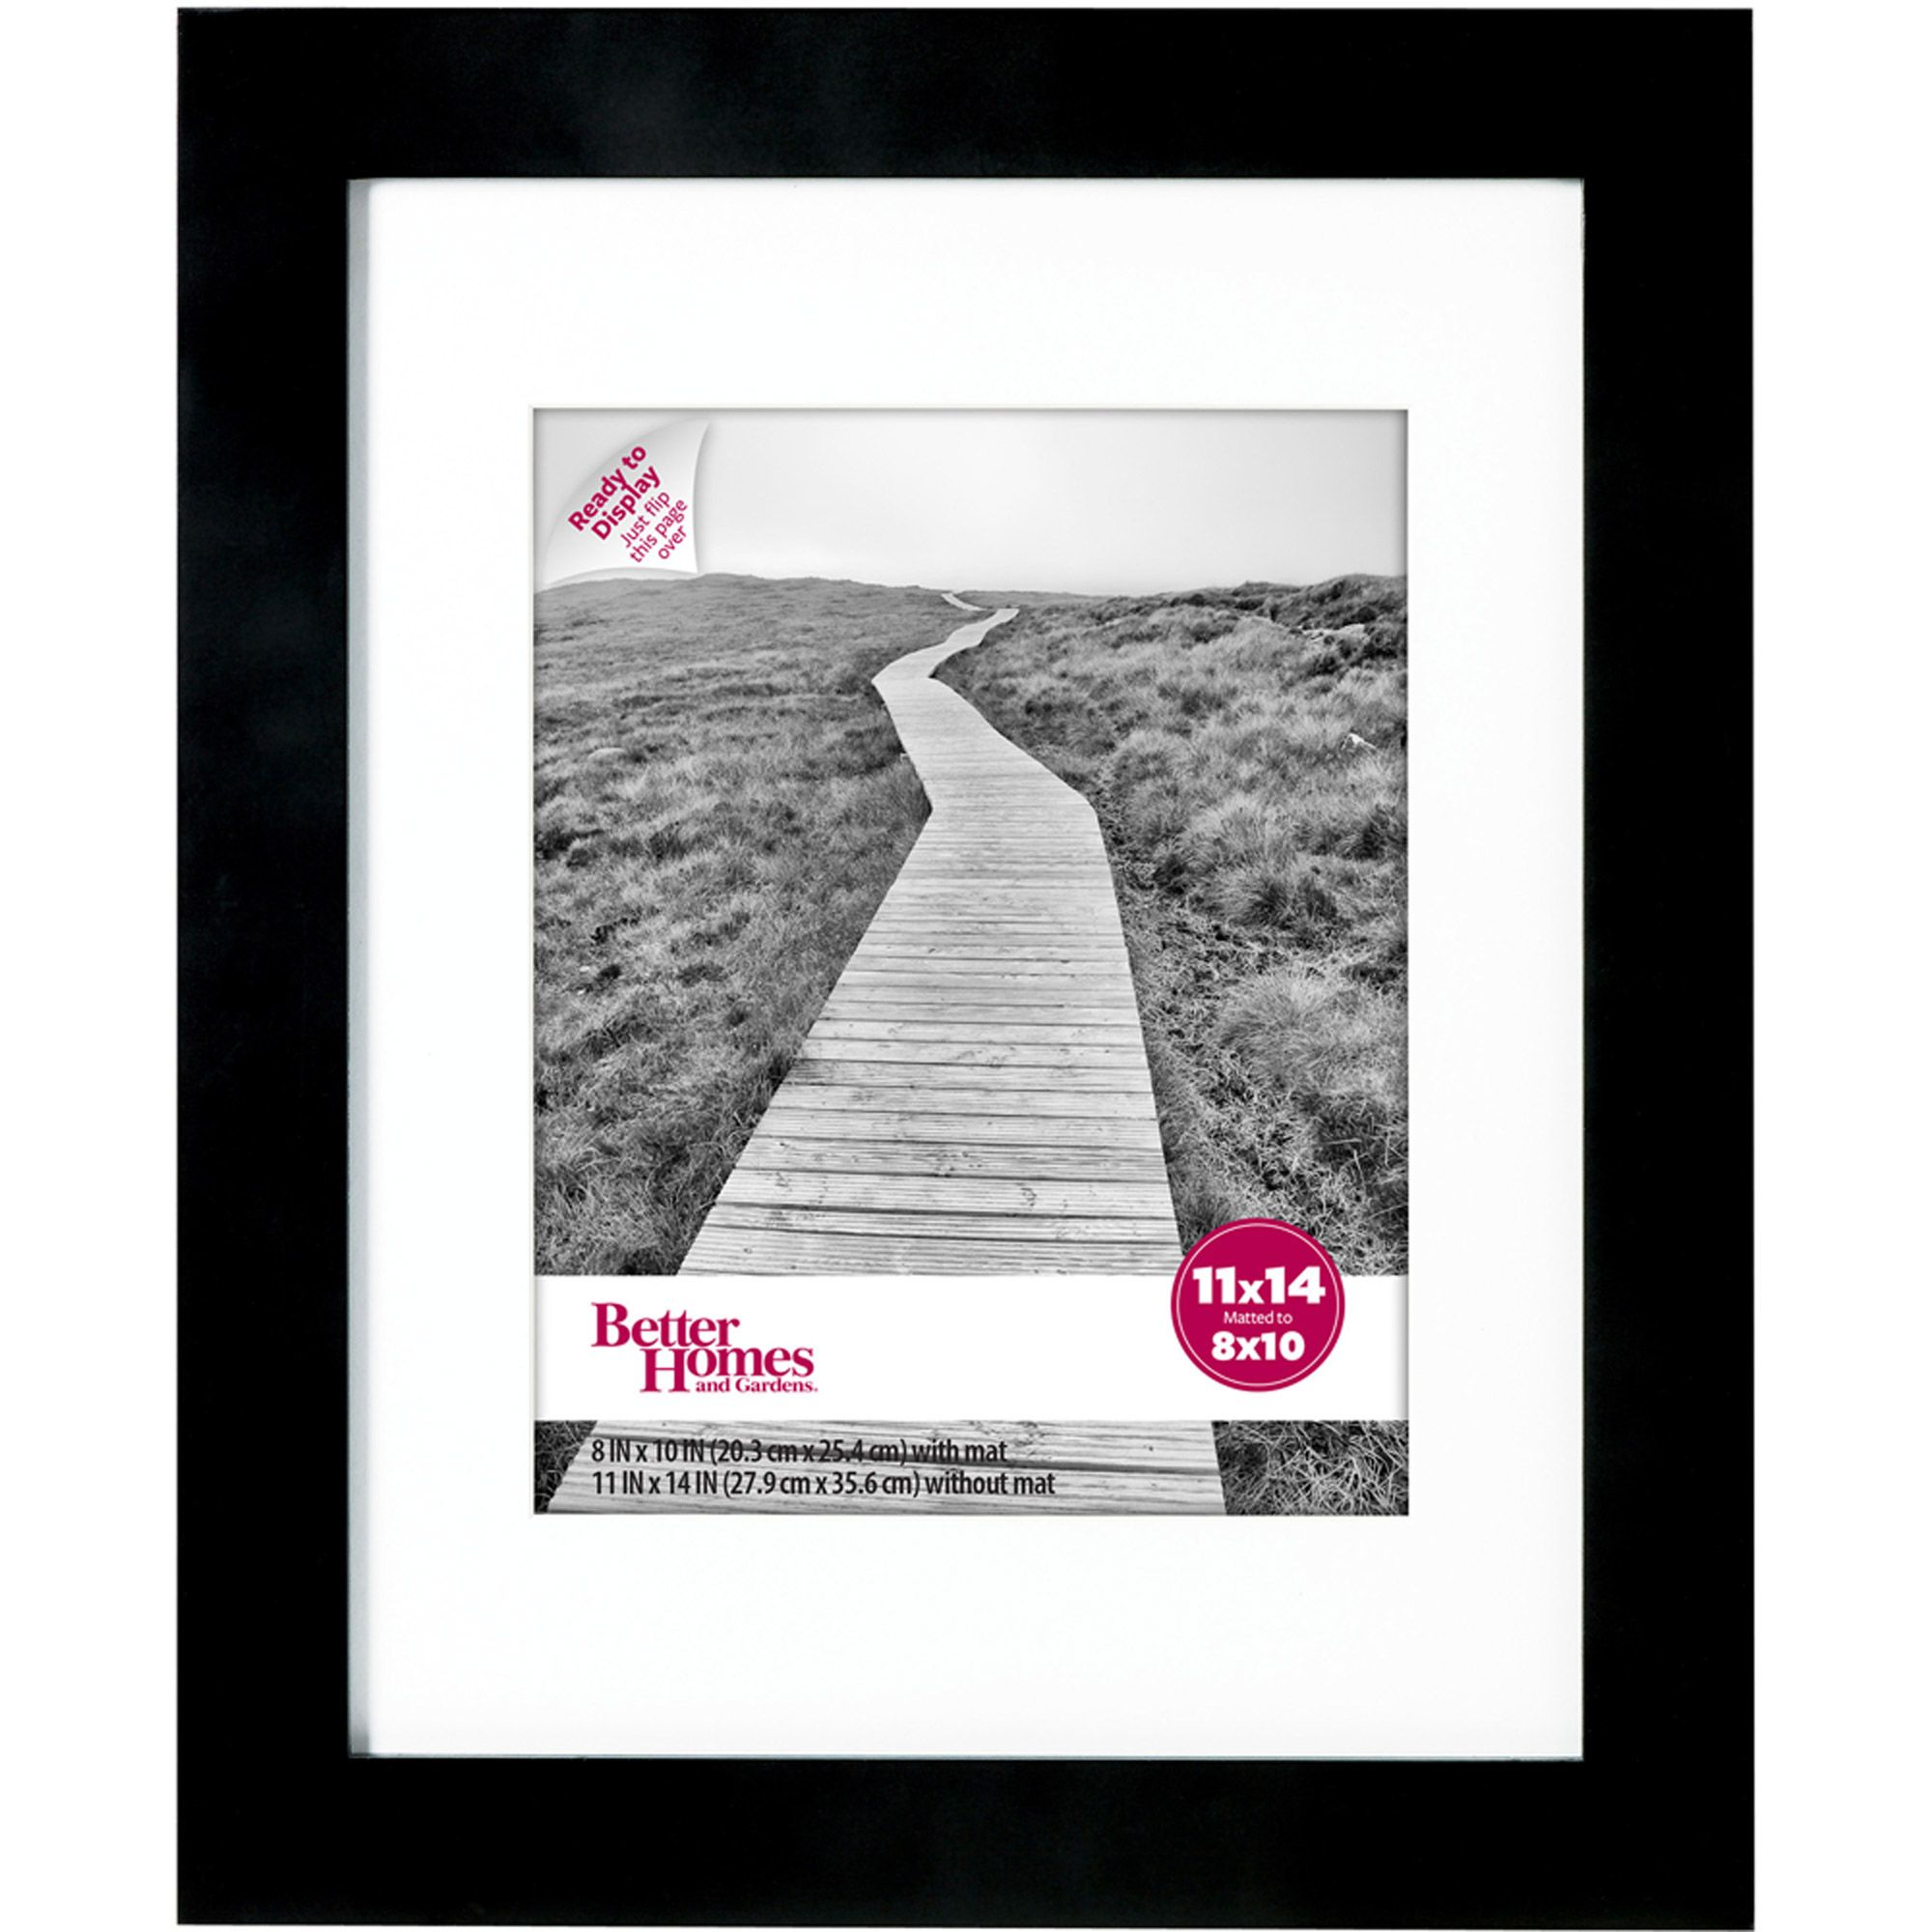 Better Homes and Gardens 11x14 Wide Black Picture Frame | For the ...